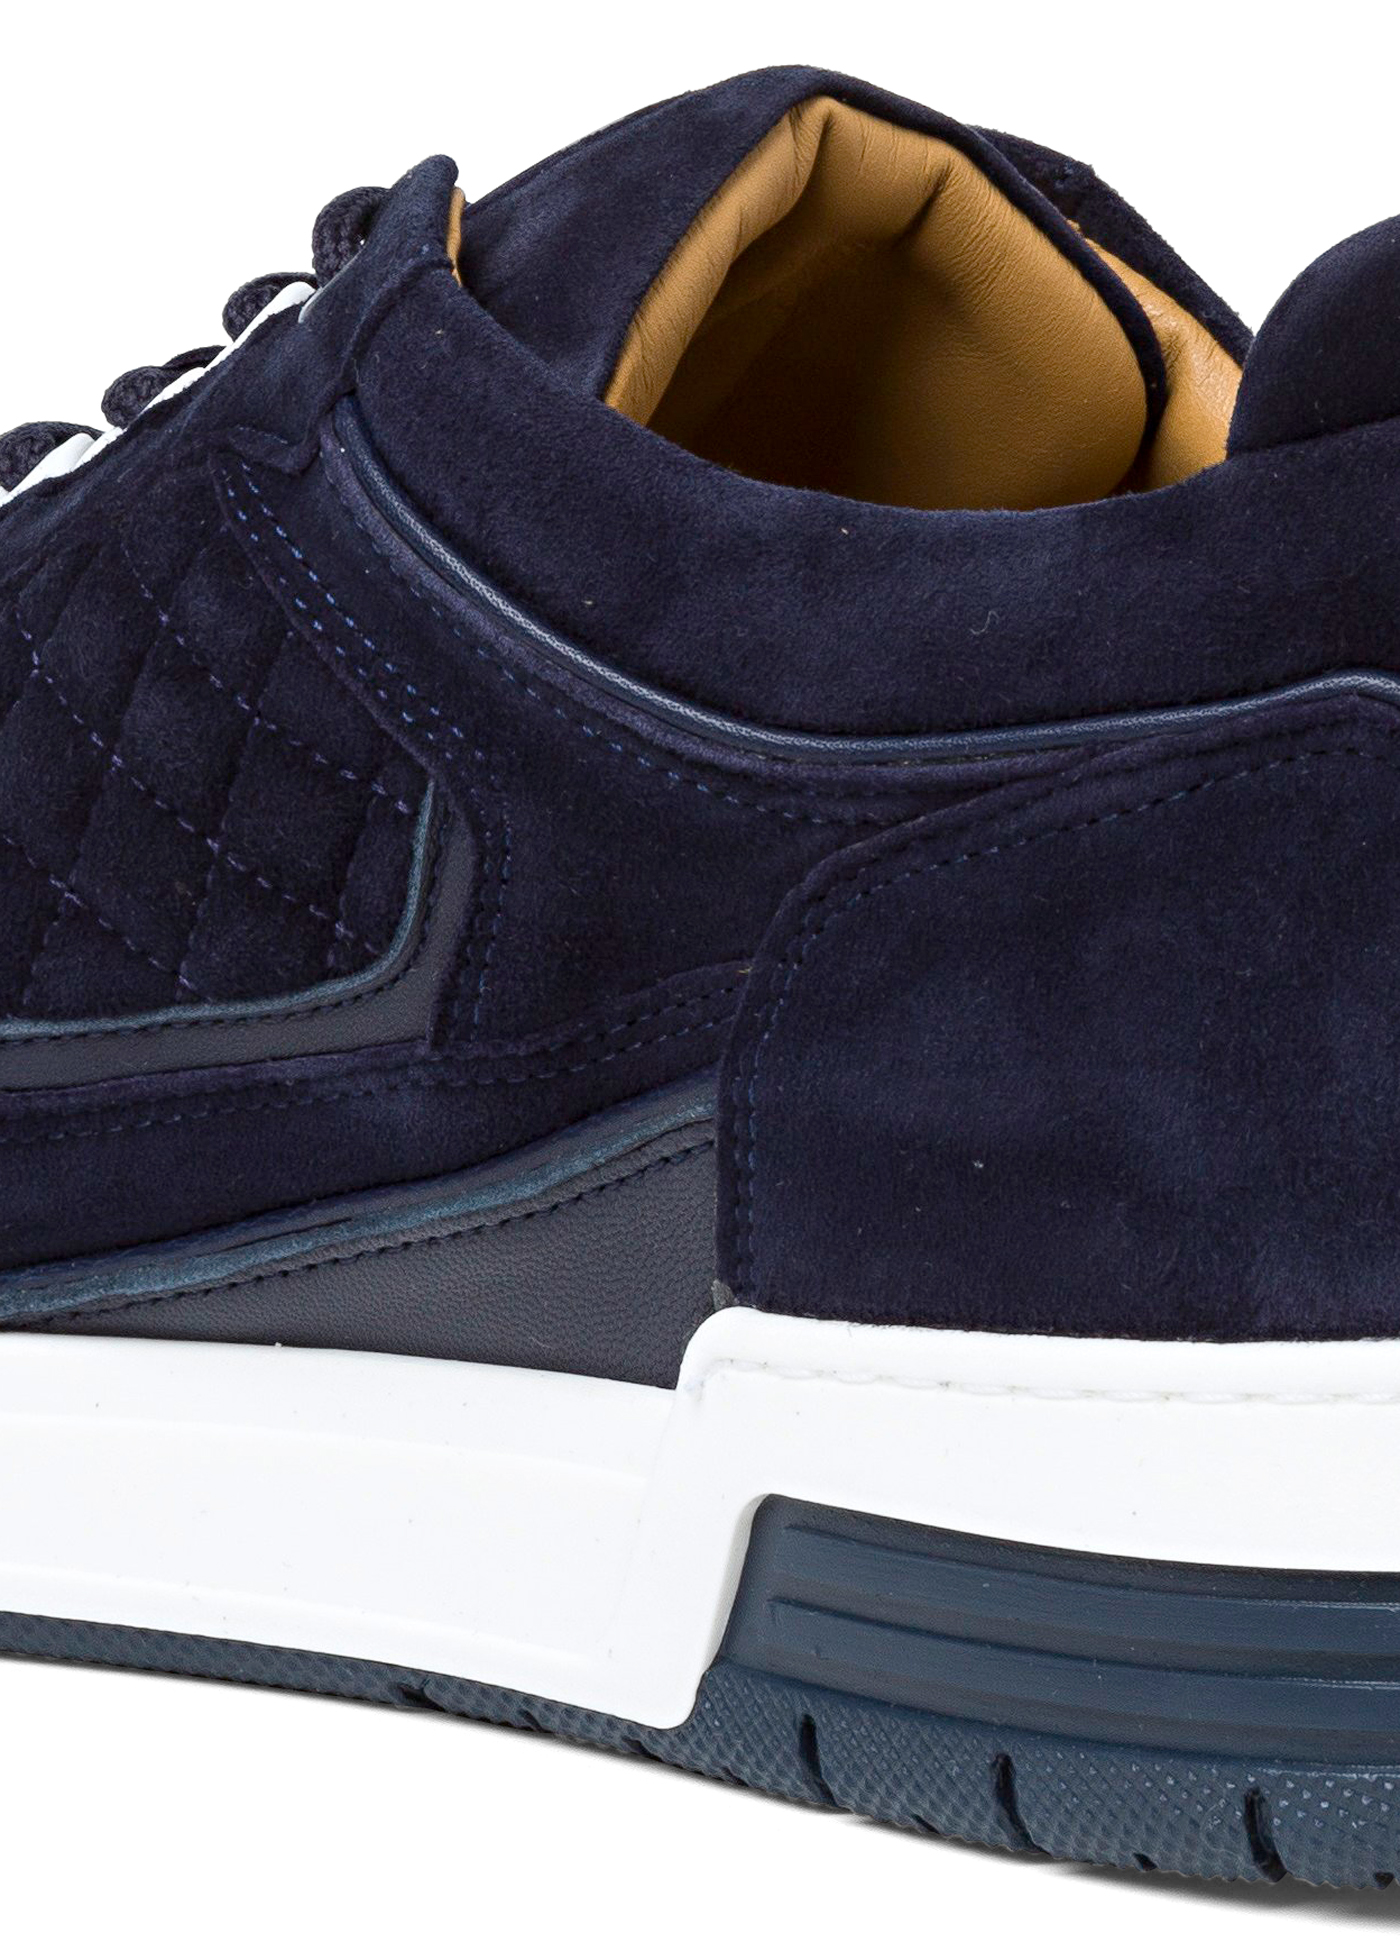 Low Top - Turbo - Blue Velour image number 3